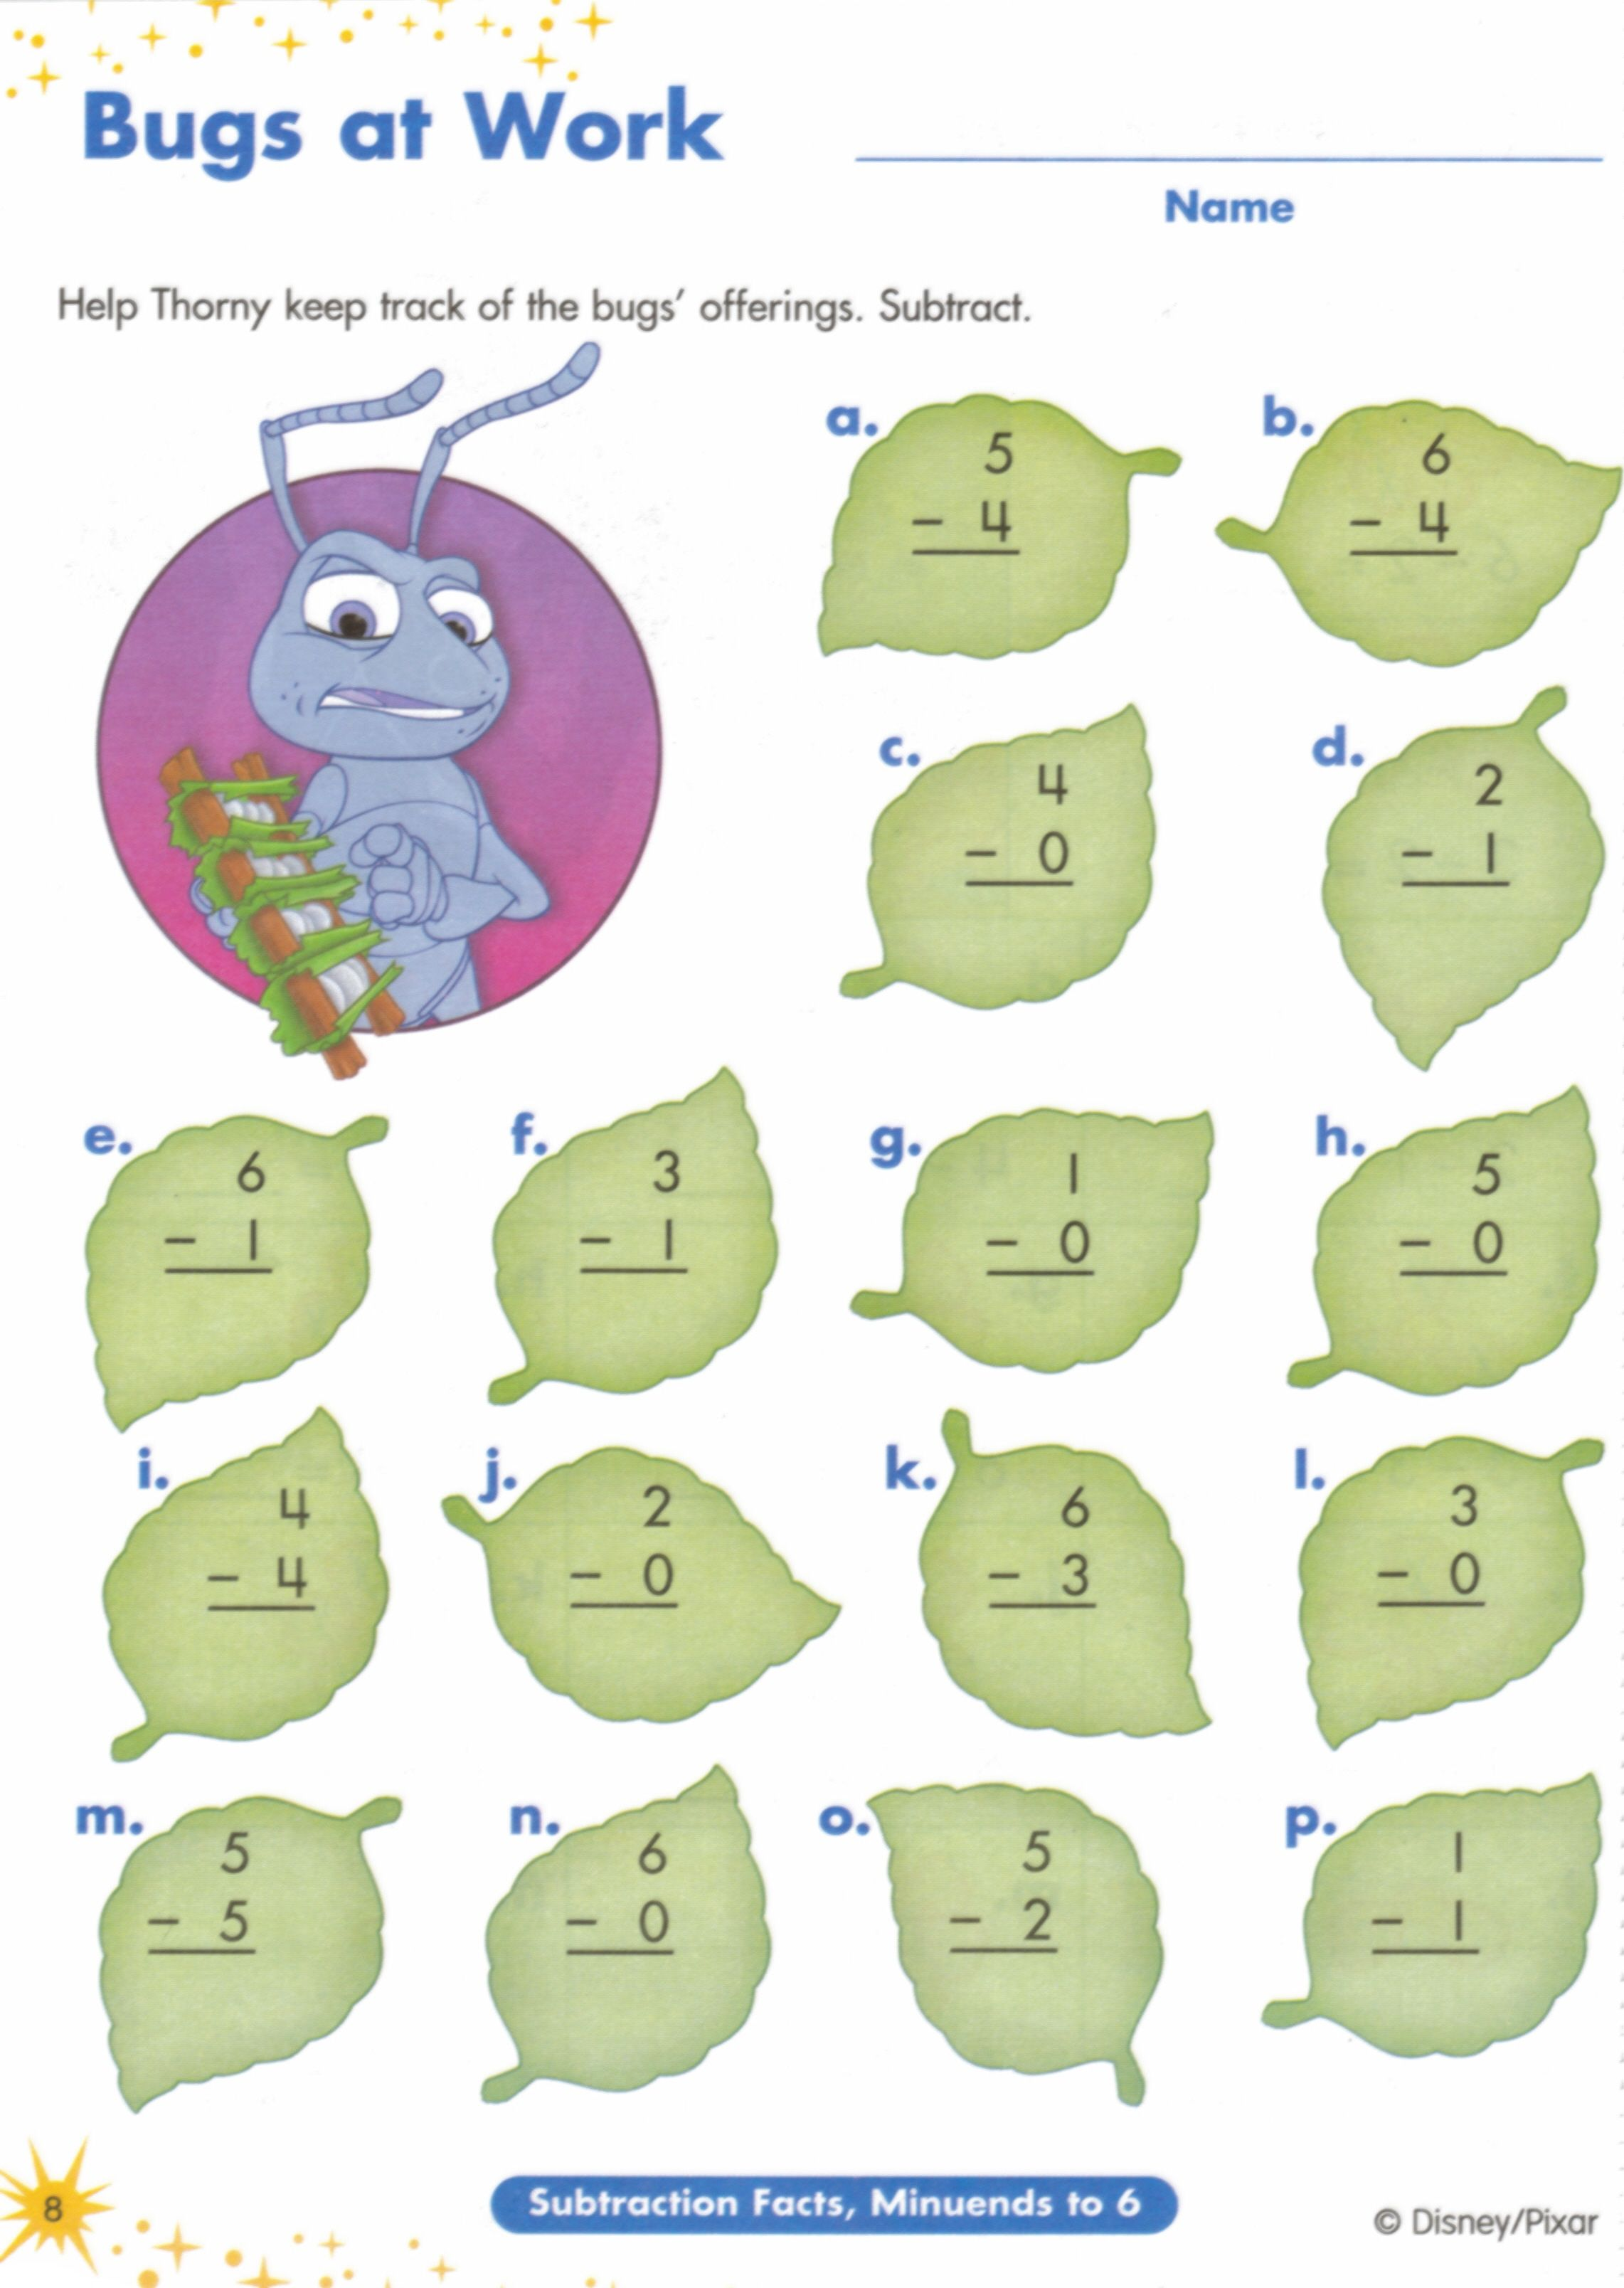 Aldiablosus  Surprising  Images About Worksheets On Pinterest  Fun Facts For Kids  With Marvelous  Images About Worksheets On Pinterest  Fun Facts For Kids Earth Day Worksheets And Jungles With Comely Halloween Worksheets Kindergarten Also Telling Time Spanish Worksheets In Addition Absolute Value Inequalities Worksheets And Fraction Worksheets For Th Grade As Well As Free Printable Music Theory Worksheets Additionally Kindergarten Worksheets Printables From Pinterestcom With Aldiablosus  Marvelous  Images About Worksheets On Pinterest  Fun Facts For Kids  With Comely  Images About Worksheets On Pinterest  Fun Facts For Kids Earth Day Worksheets And Jungles And Surprising Halloween Worksheets Kindergarten Also Telling Time Spanish Worksheets In Addition Absolute Value Inequalities Worksheets From Pinterestcom